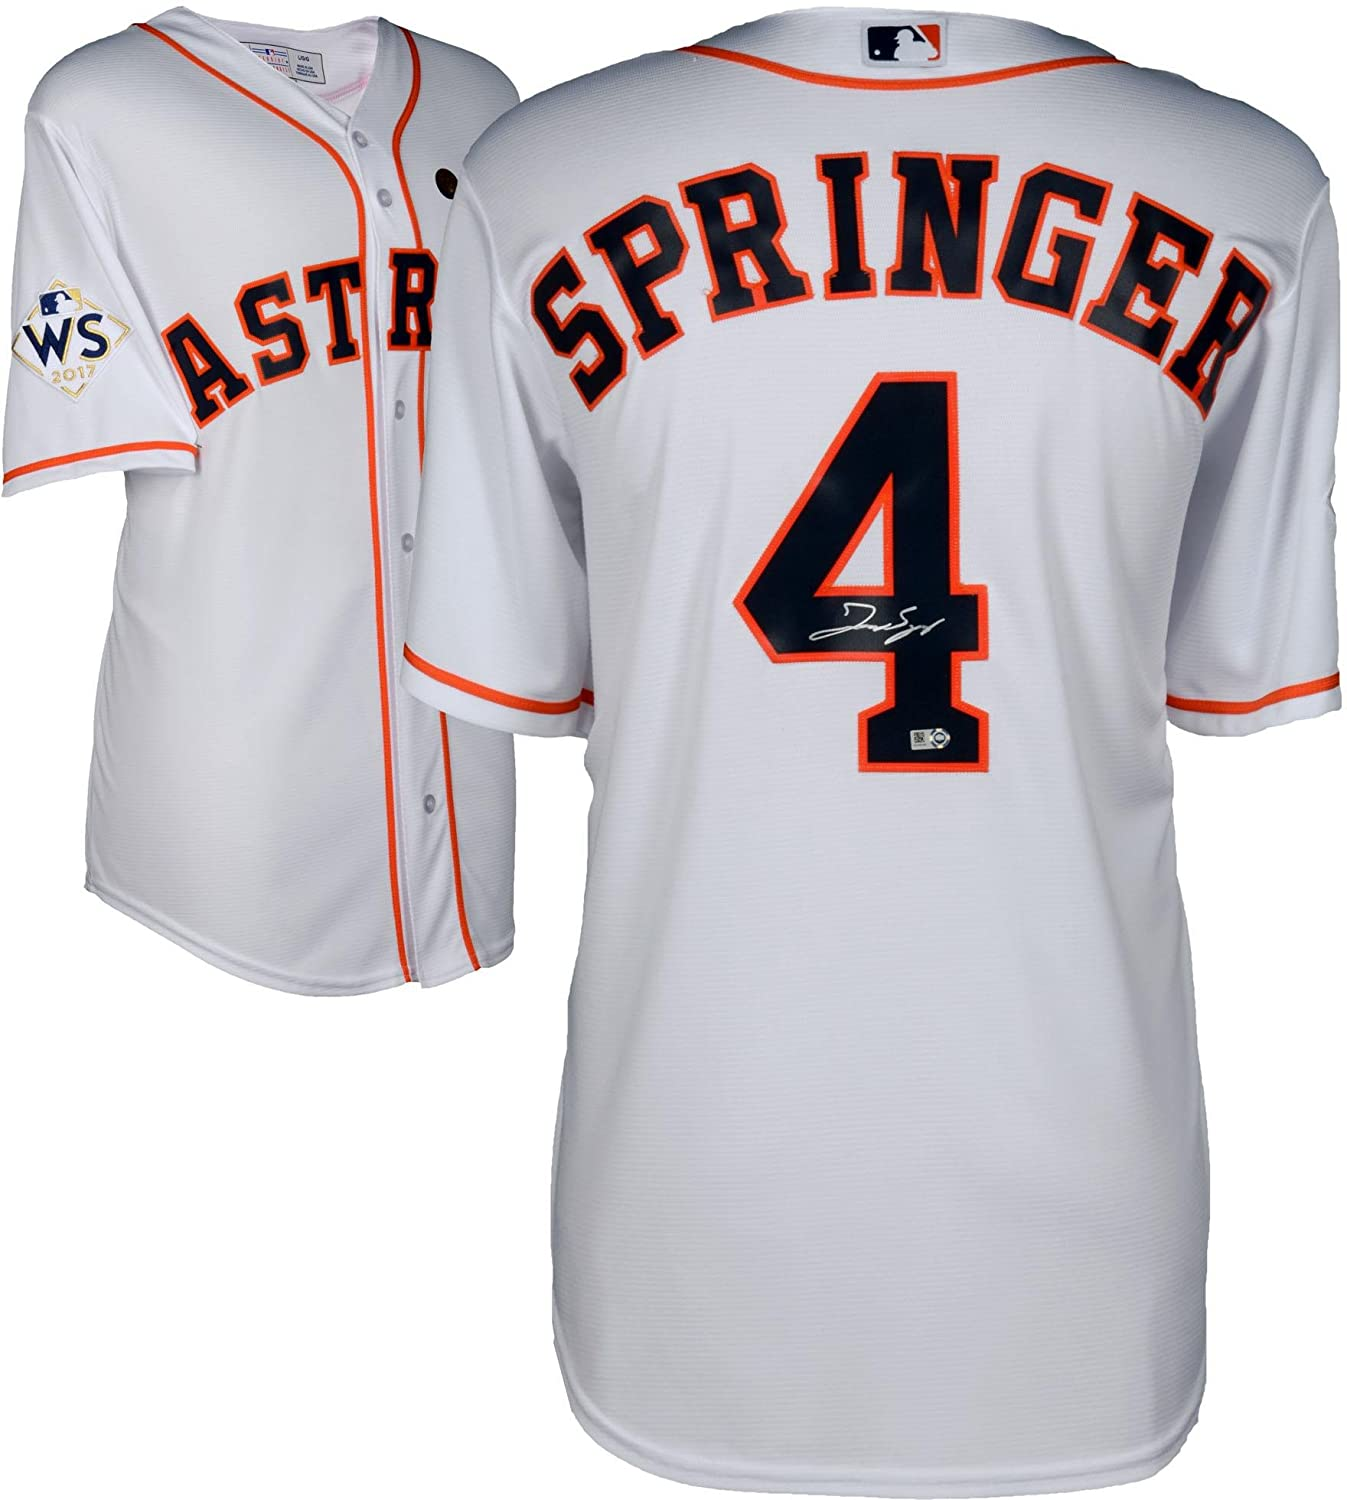 70d042403 George Springer Houston Astros 2017 MLB World Series Champions Autographed  Majestic World Series White Replica Jersey - Fanatics Authentic Certified  at ...